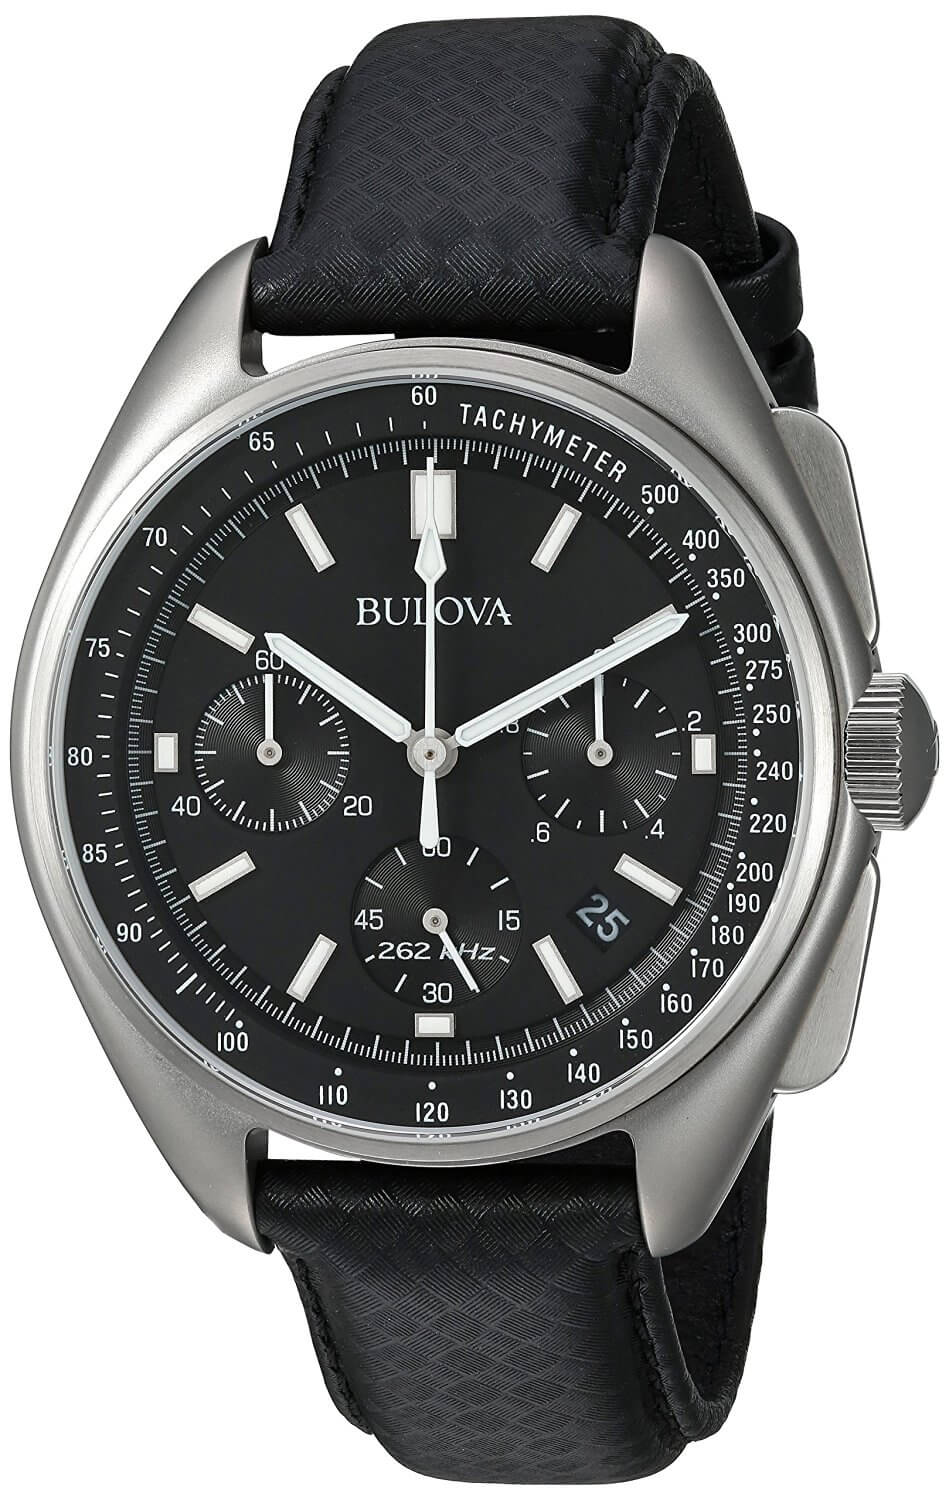 Bulova Moon Watch Review Front